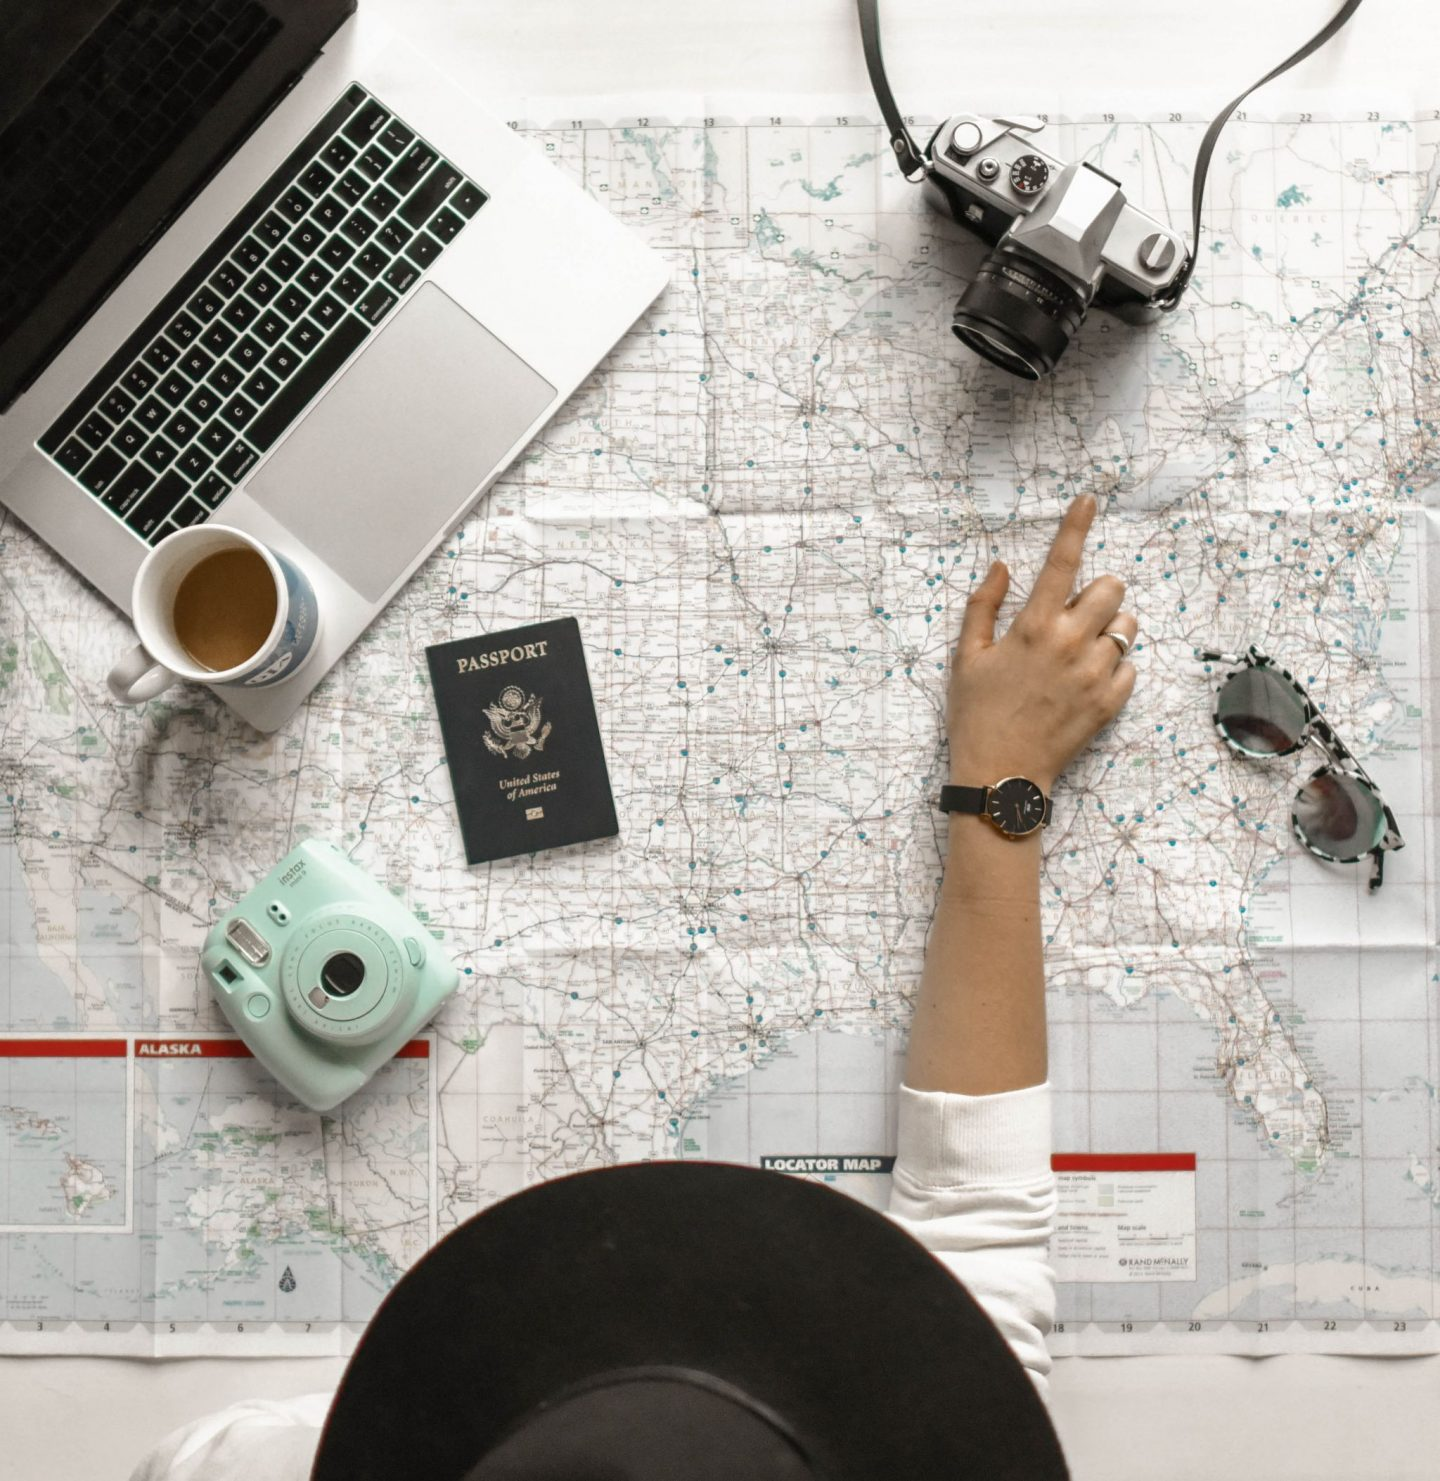 DO'S AND DON'TS FOR A #TRAVELBLOG